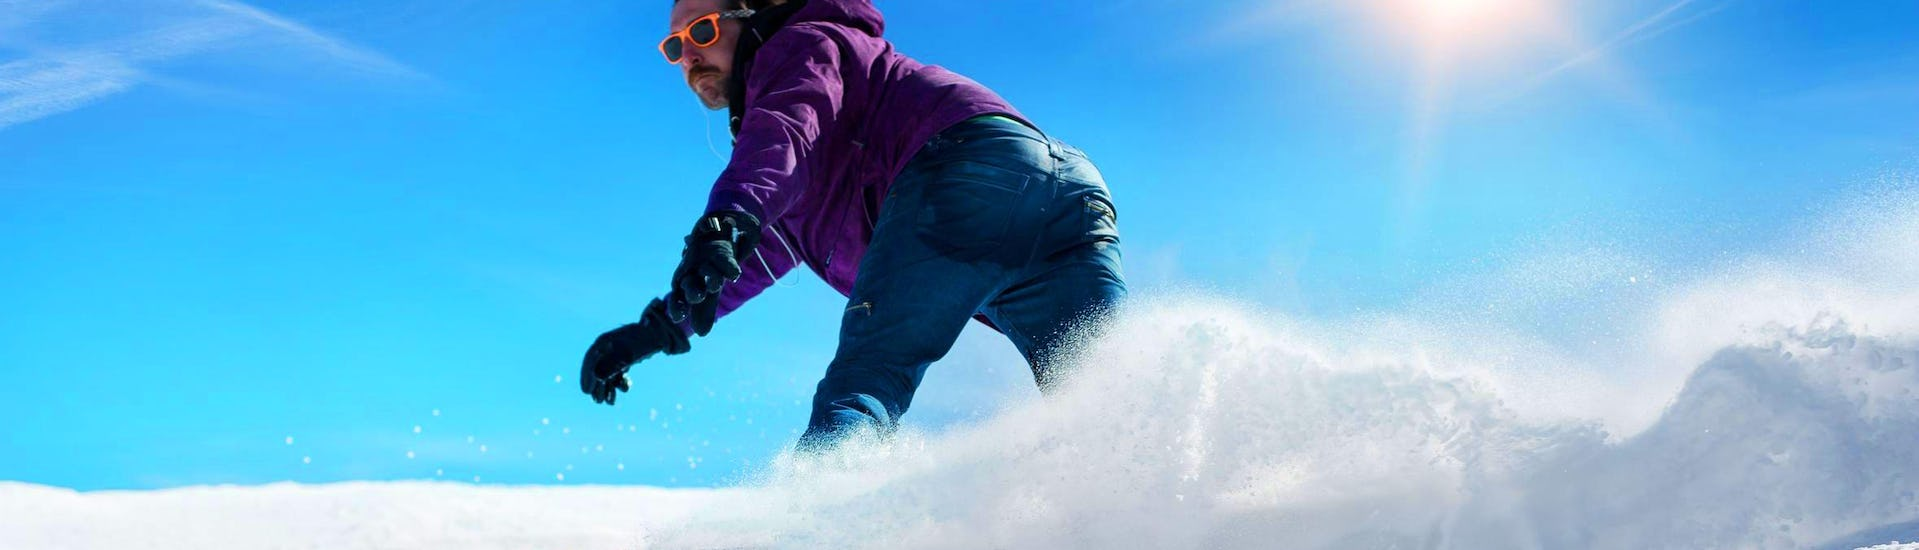 Snowboarder takes a tight turn on a sunny day during his Private Snowboarding Lessons for Kids & Adults - All Levels with the ski school Skischule Thomas.